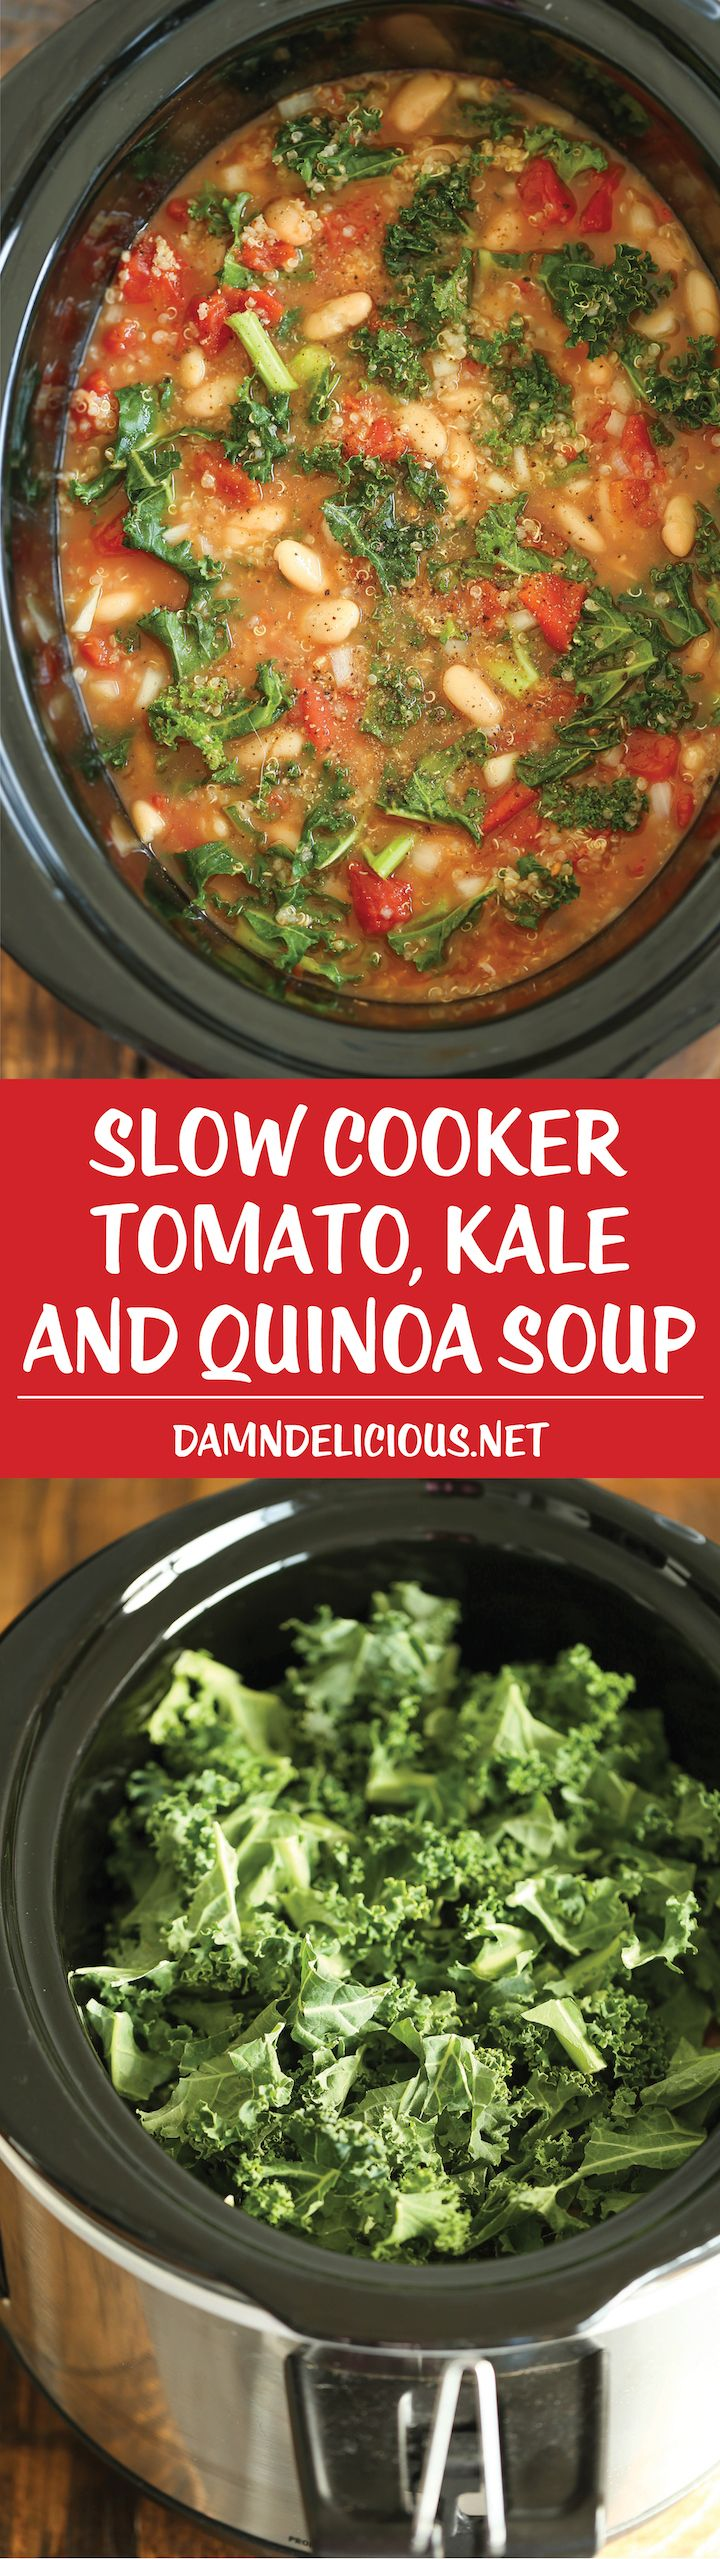 Slow Cooker Kale and Quinoa Soup forecasting